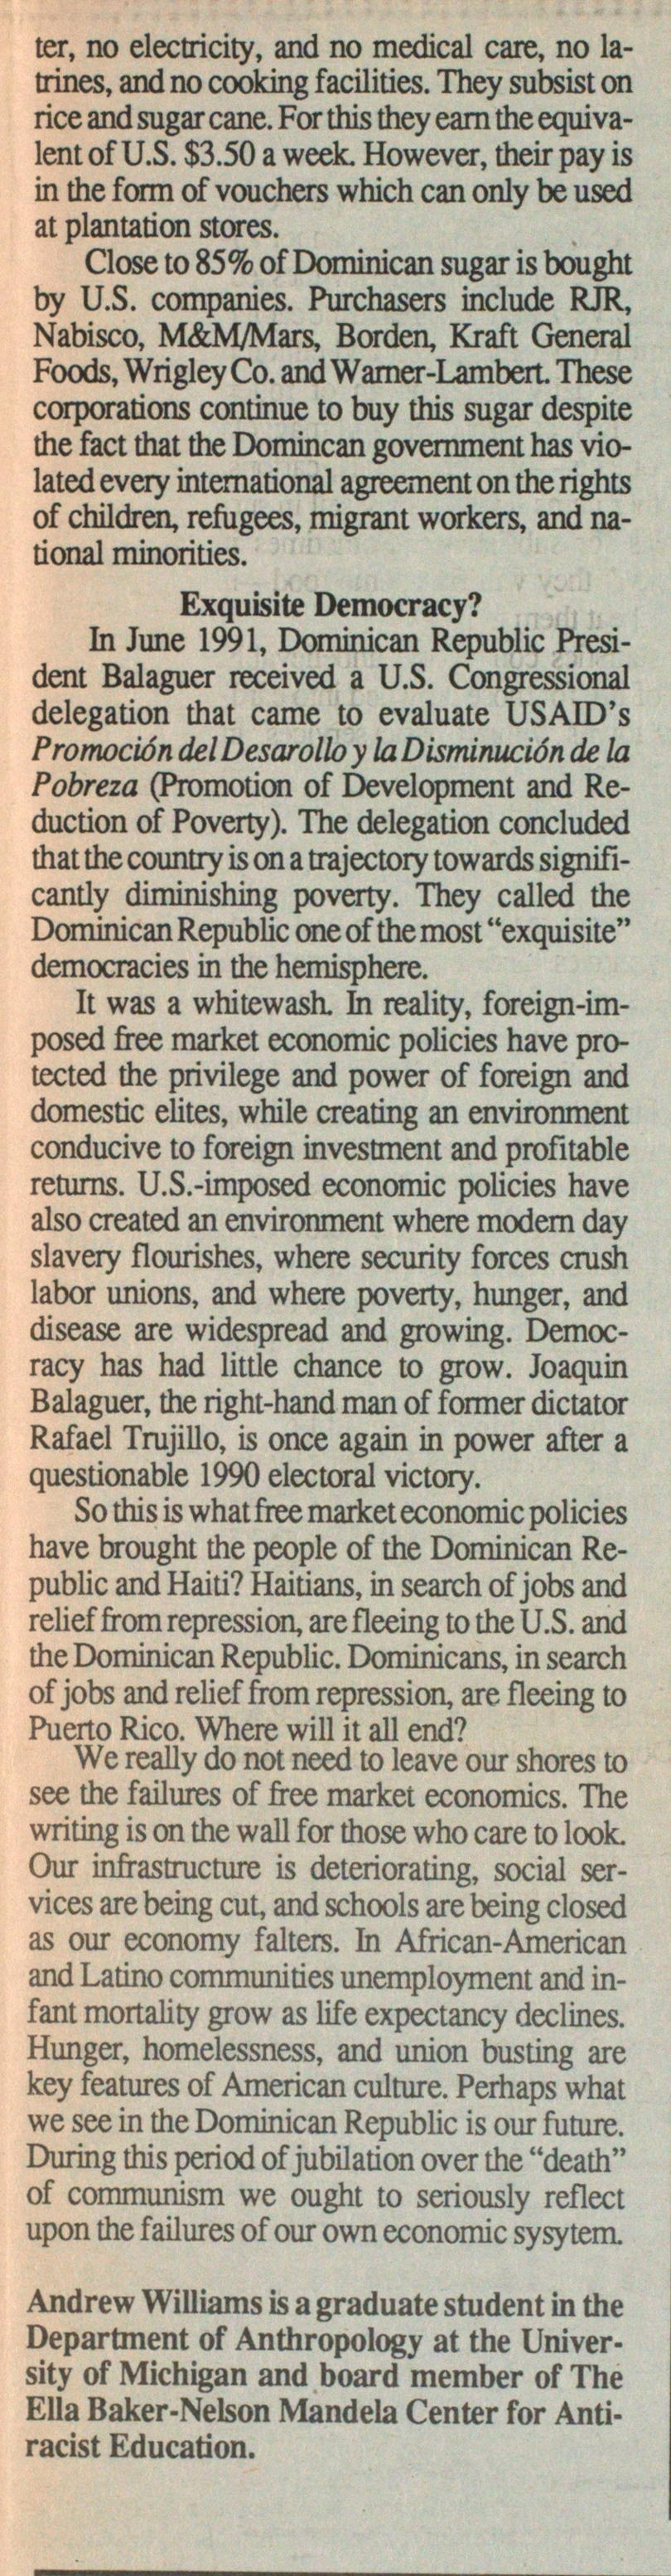 The Dominican Republic: Failure Of The Free Market image